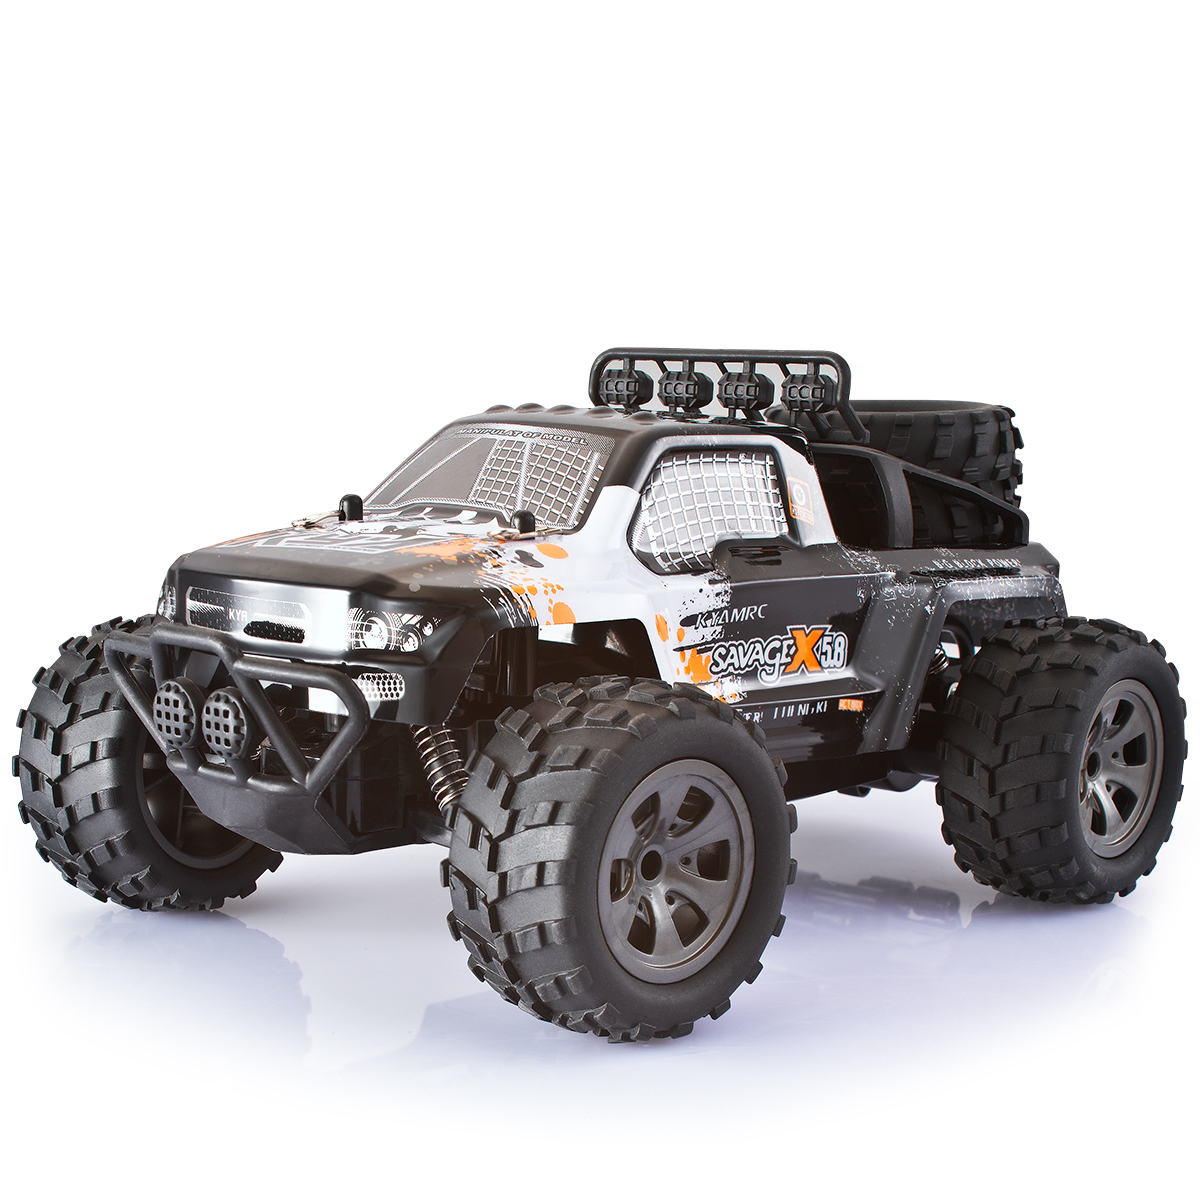 Grtsunsea 100M Control 1:18 55KM 2.4G Remote Control RC Rock Crawler Car Truck High Speed Off-Road Vehicle Toys Kids Gift - Orange